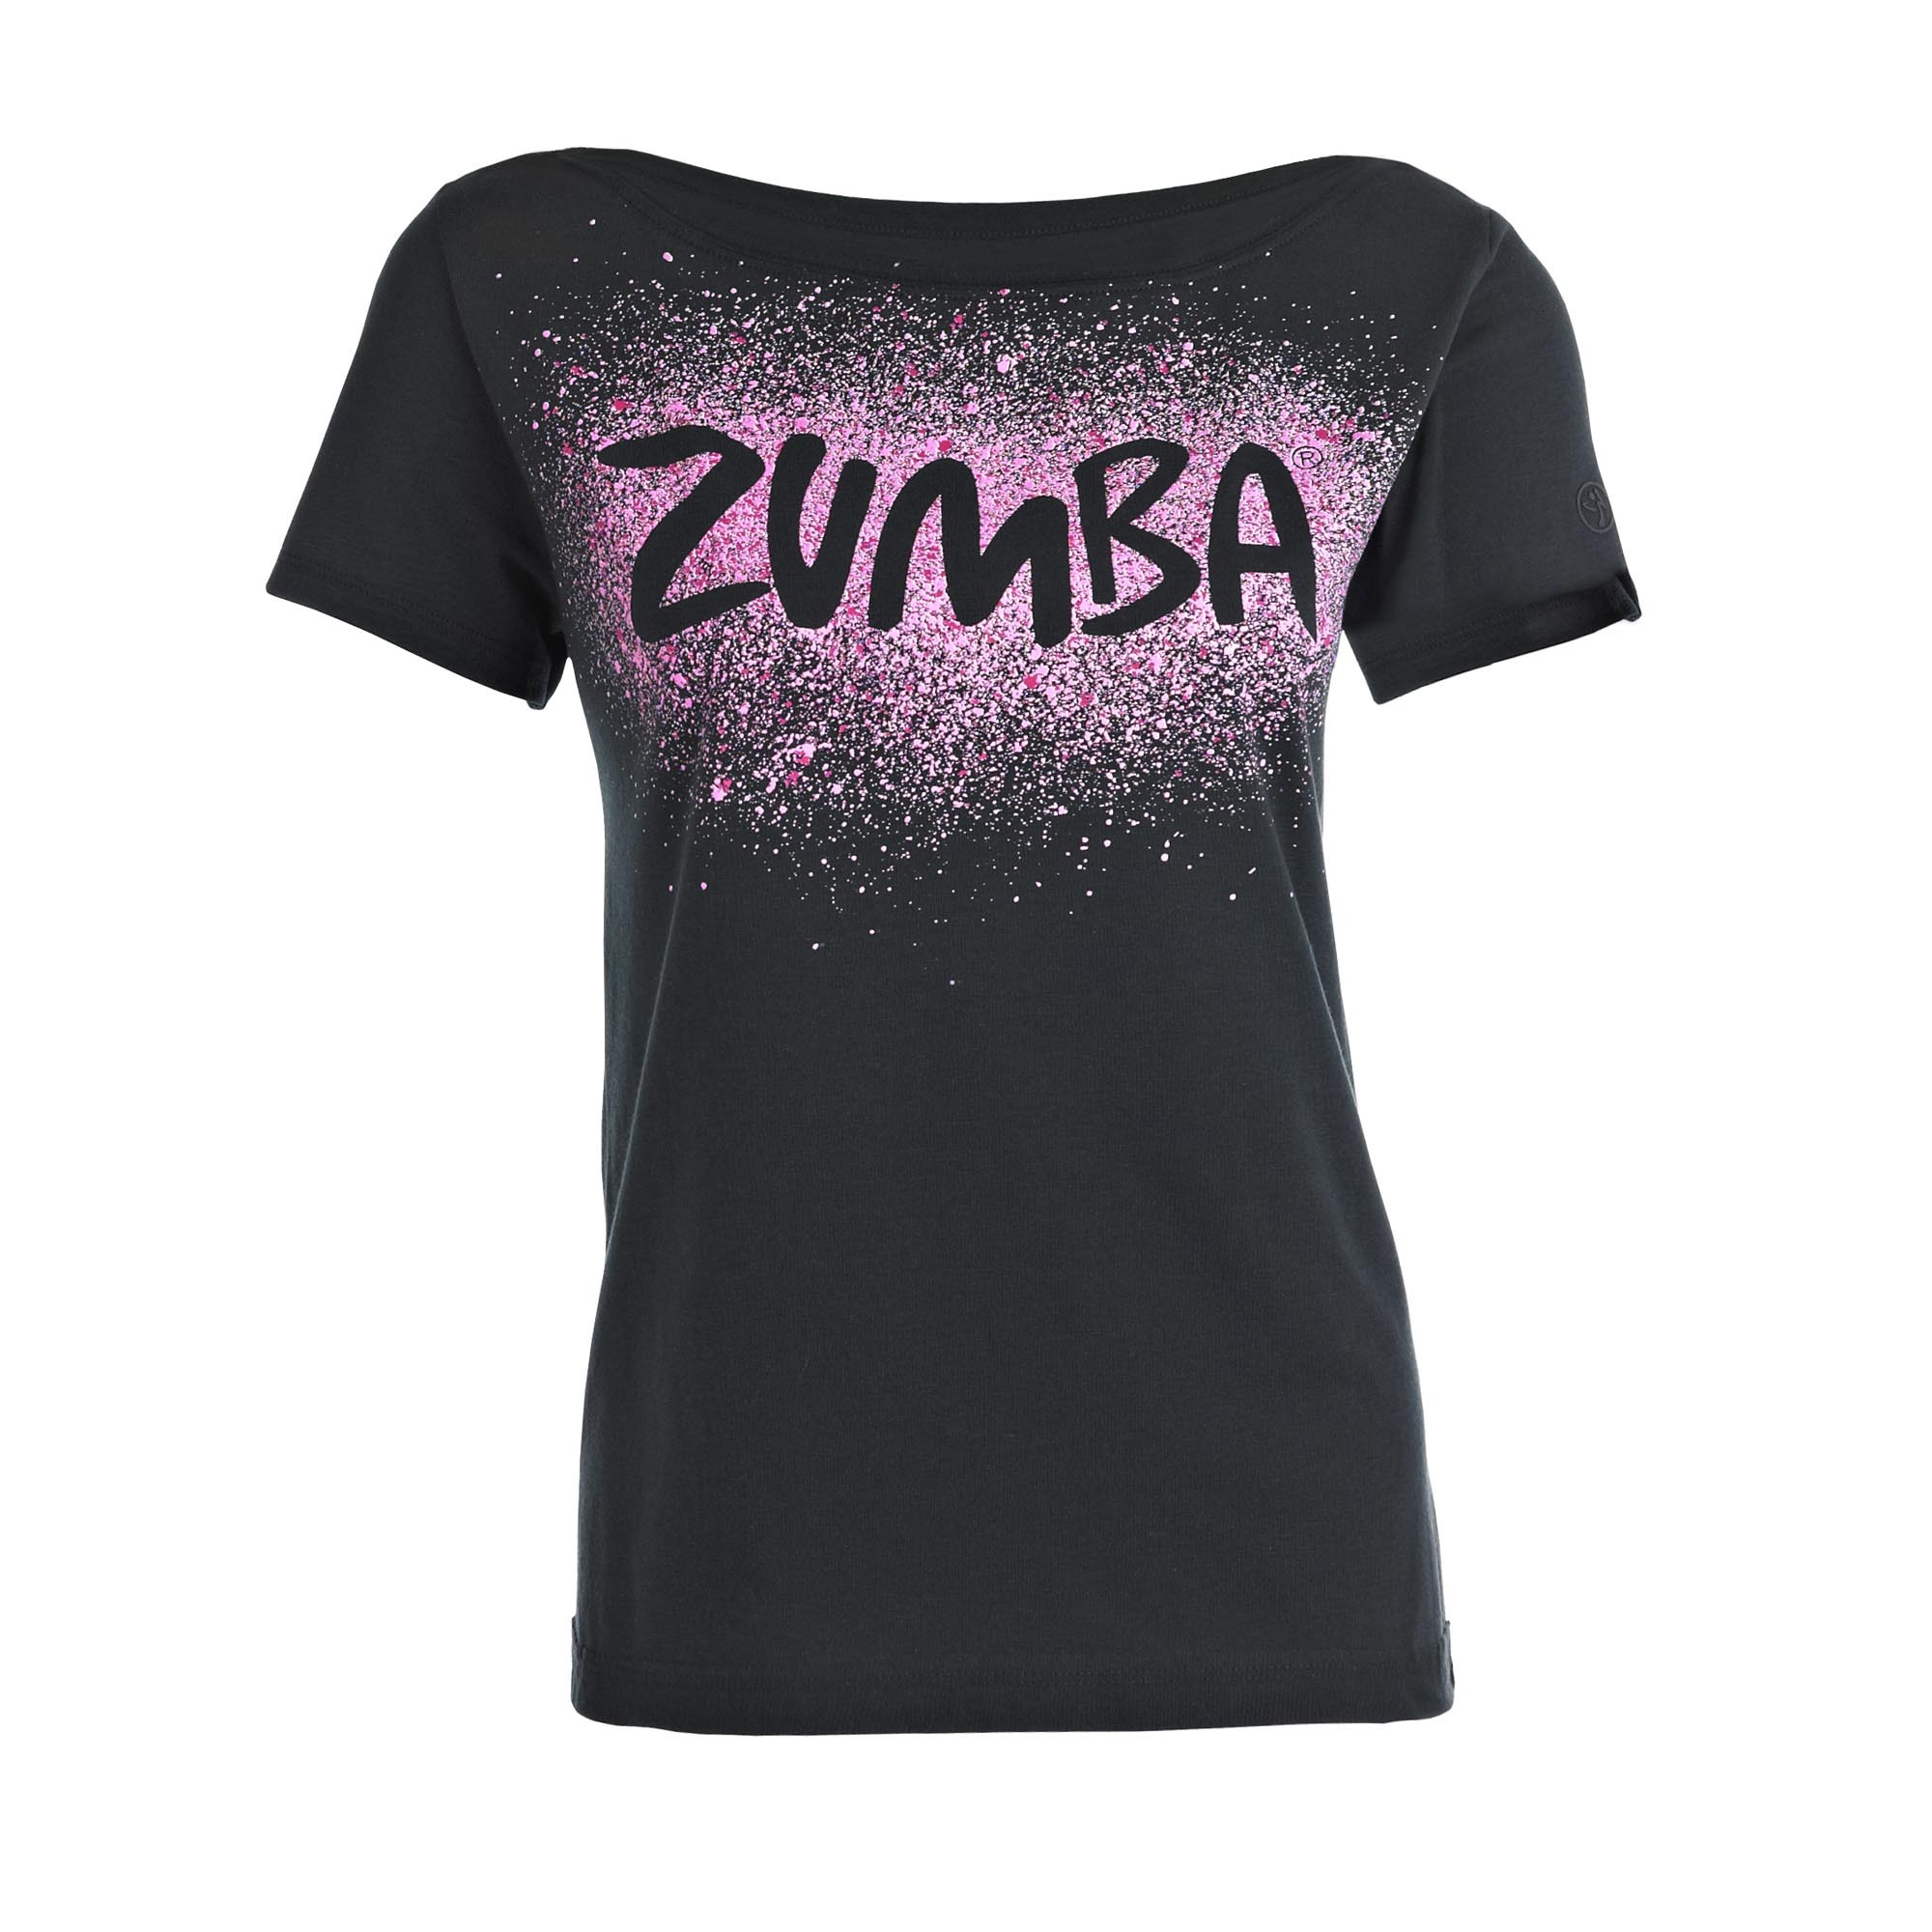 zumba cosmic fancy top shirt sz xs s black. Black Bedroom Furniture Sets. Home Design Ideas